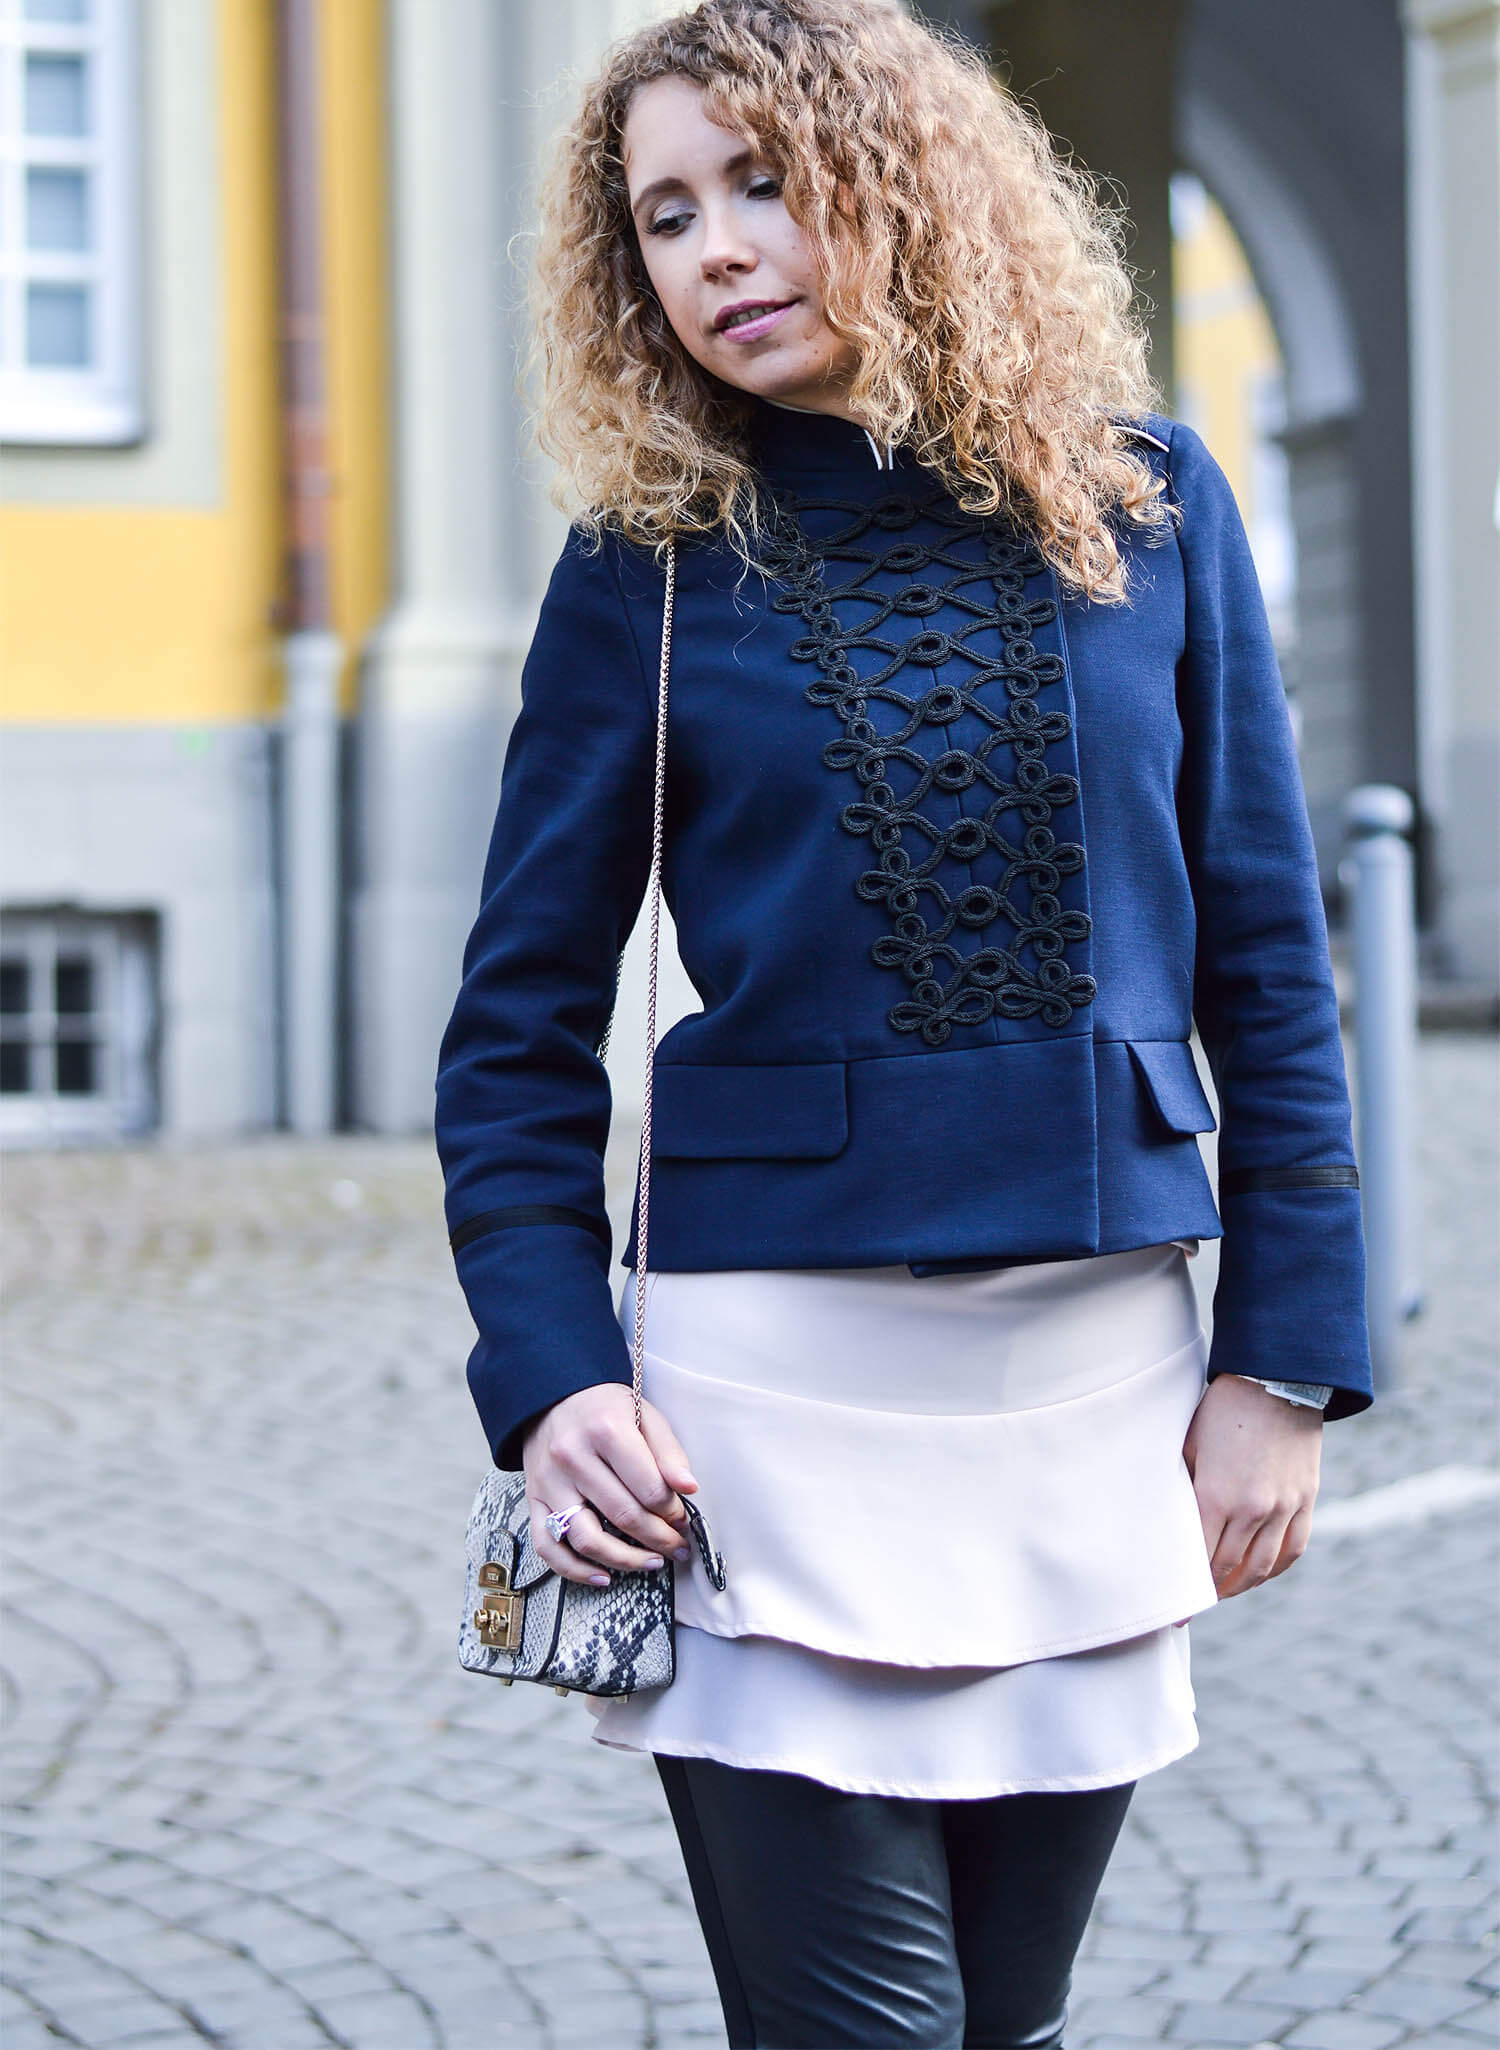 Kationette-fashionblog-nrw-Outfit-Military-Jacket-Ruffles-volants-FakeLeather-streetstyle